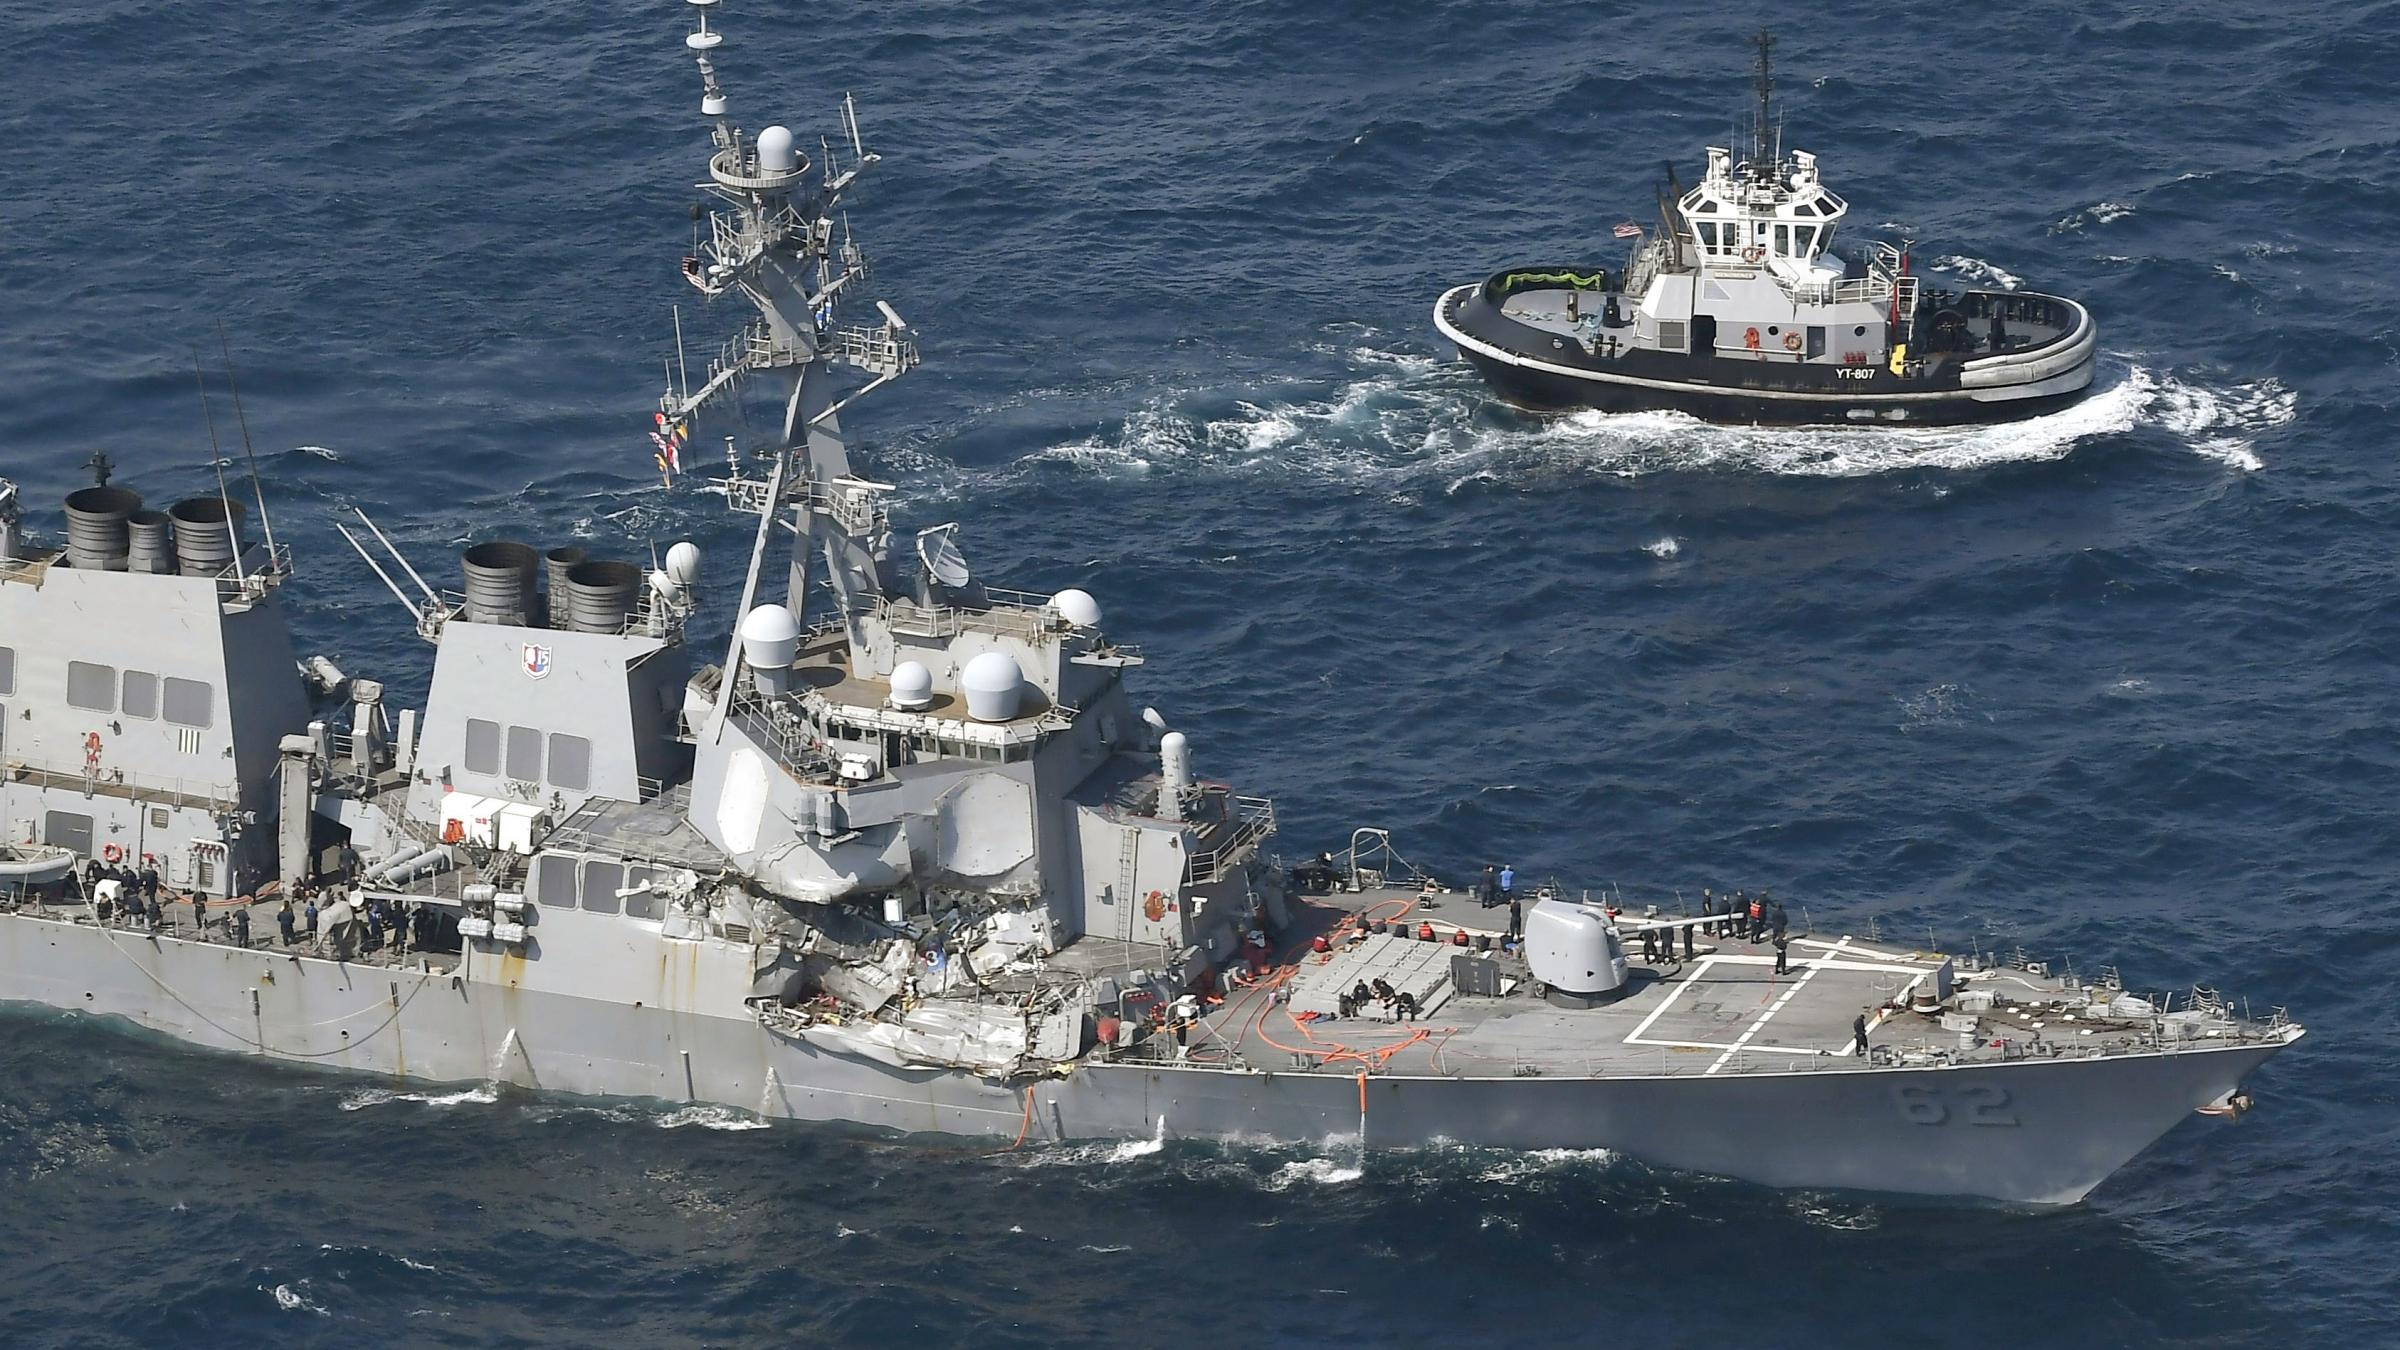 Search Underway for Missing US Navy Sailors after Fitzgerald Collision